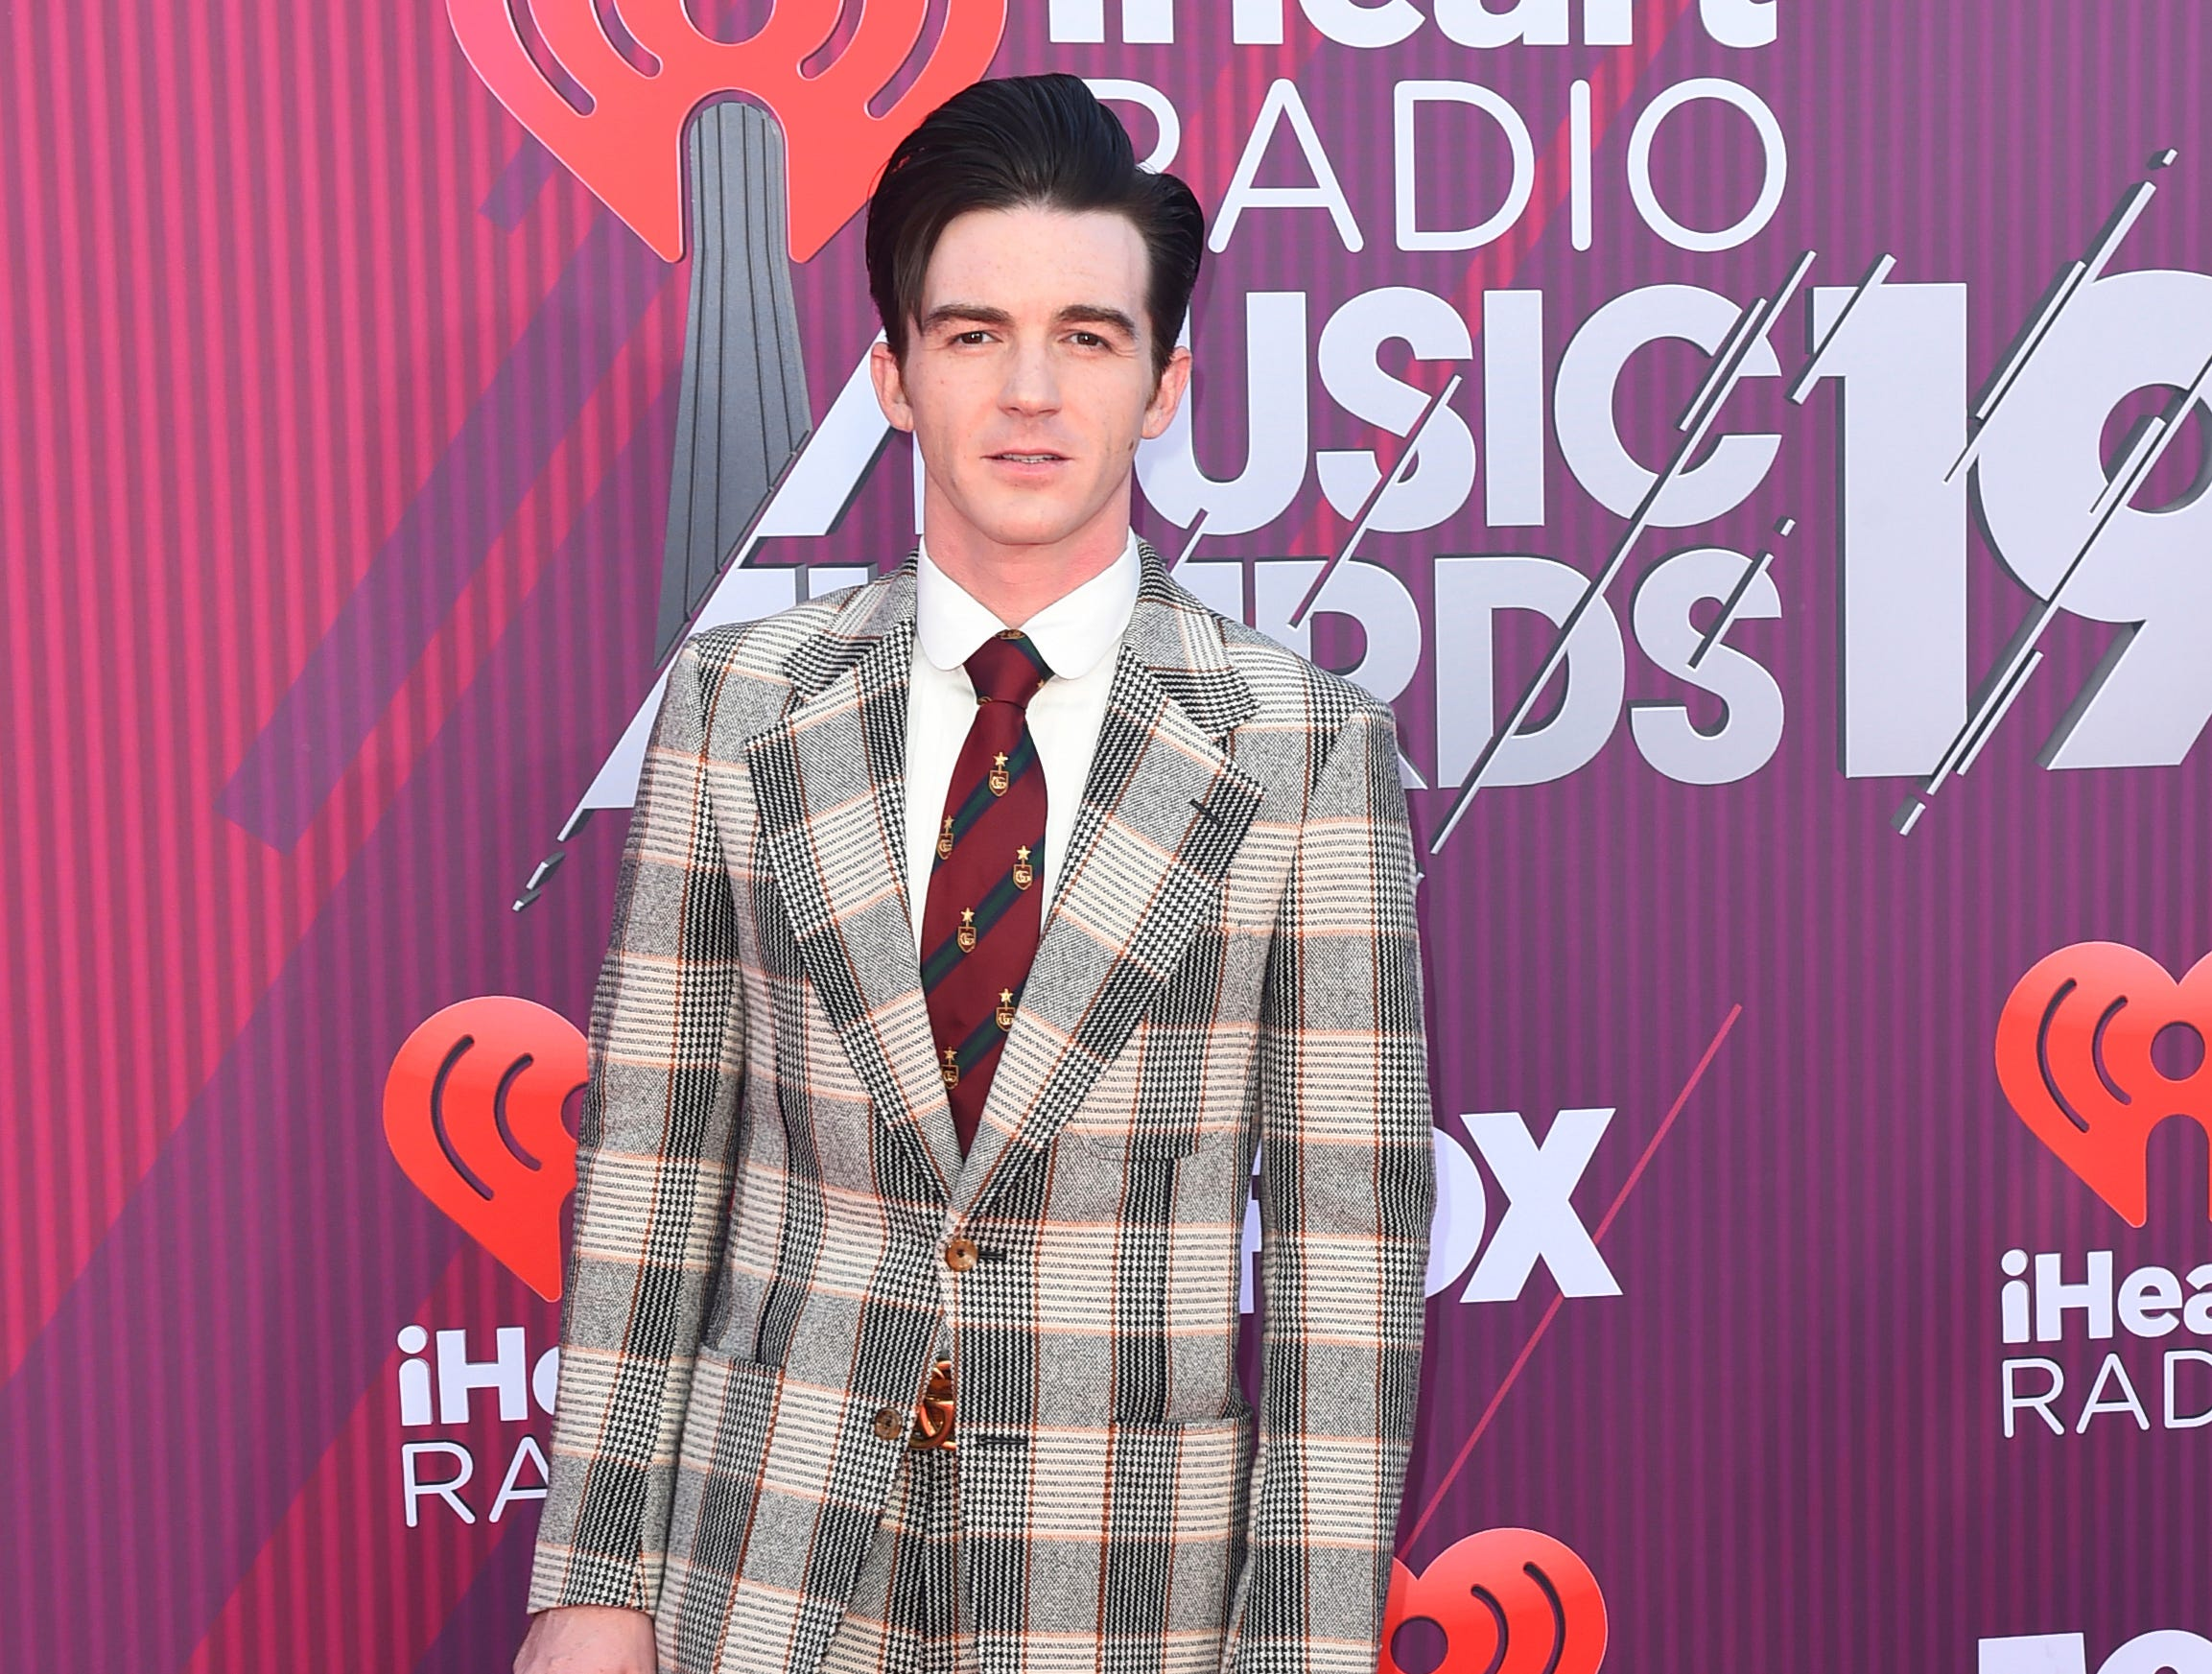 Drake Bell arrives at the iHeartRadio Music Awards.